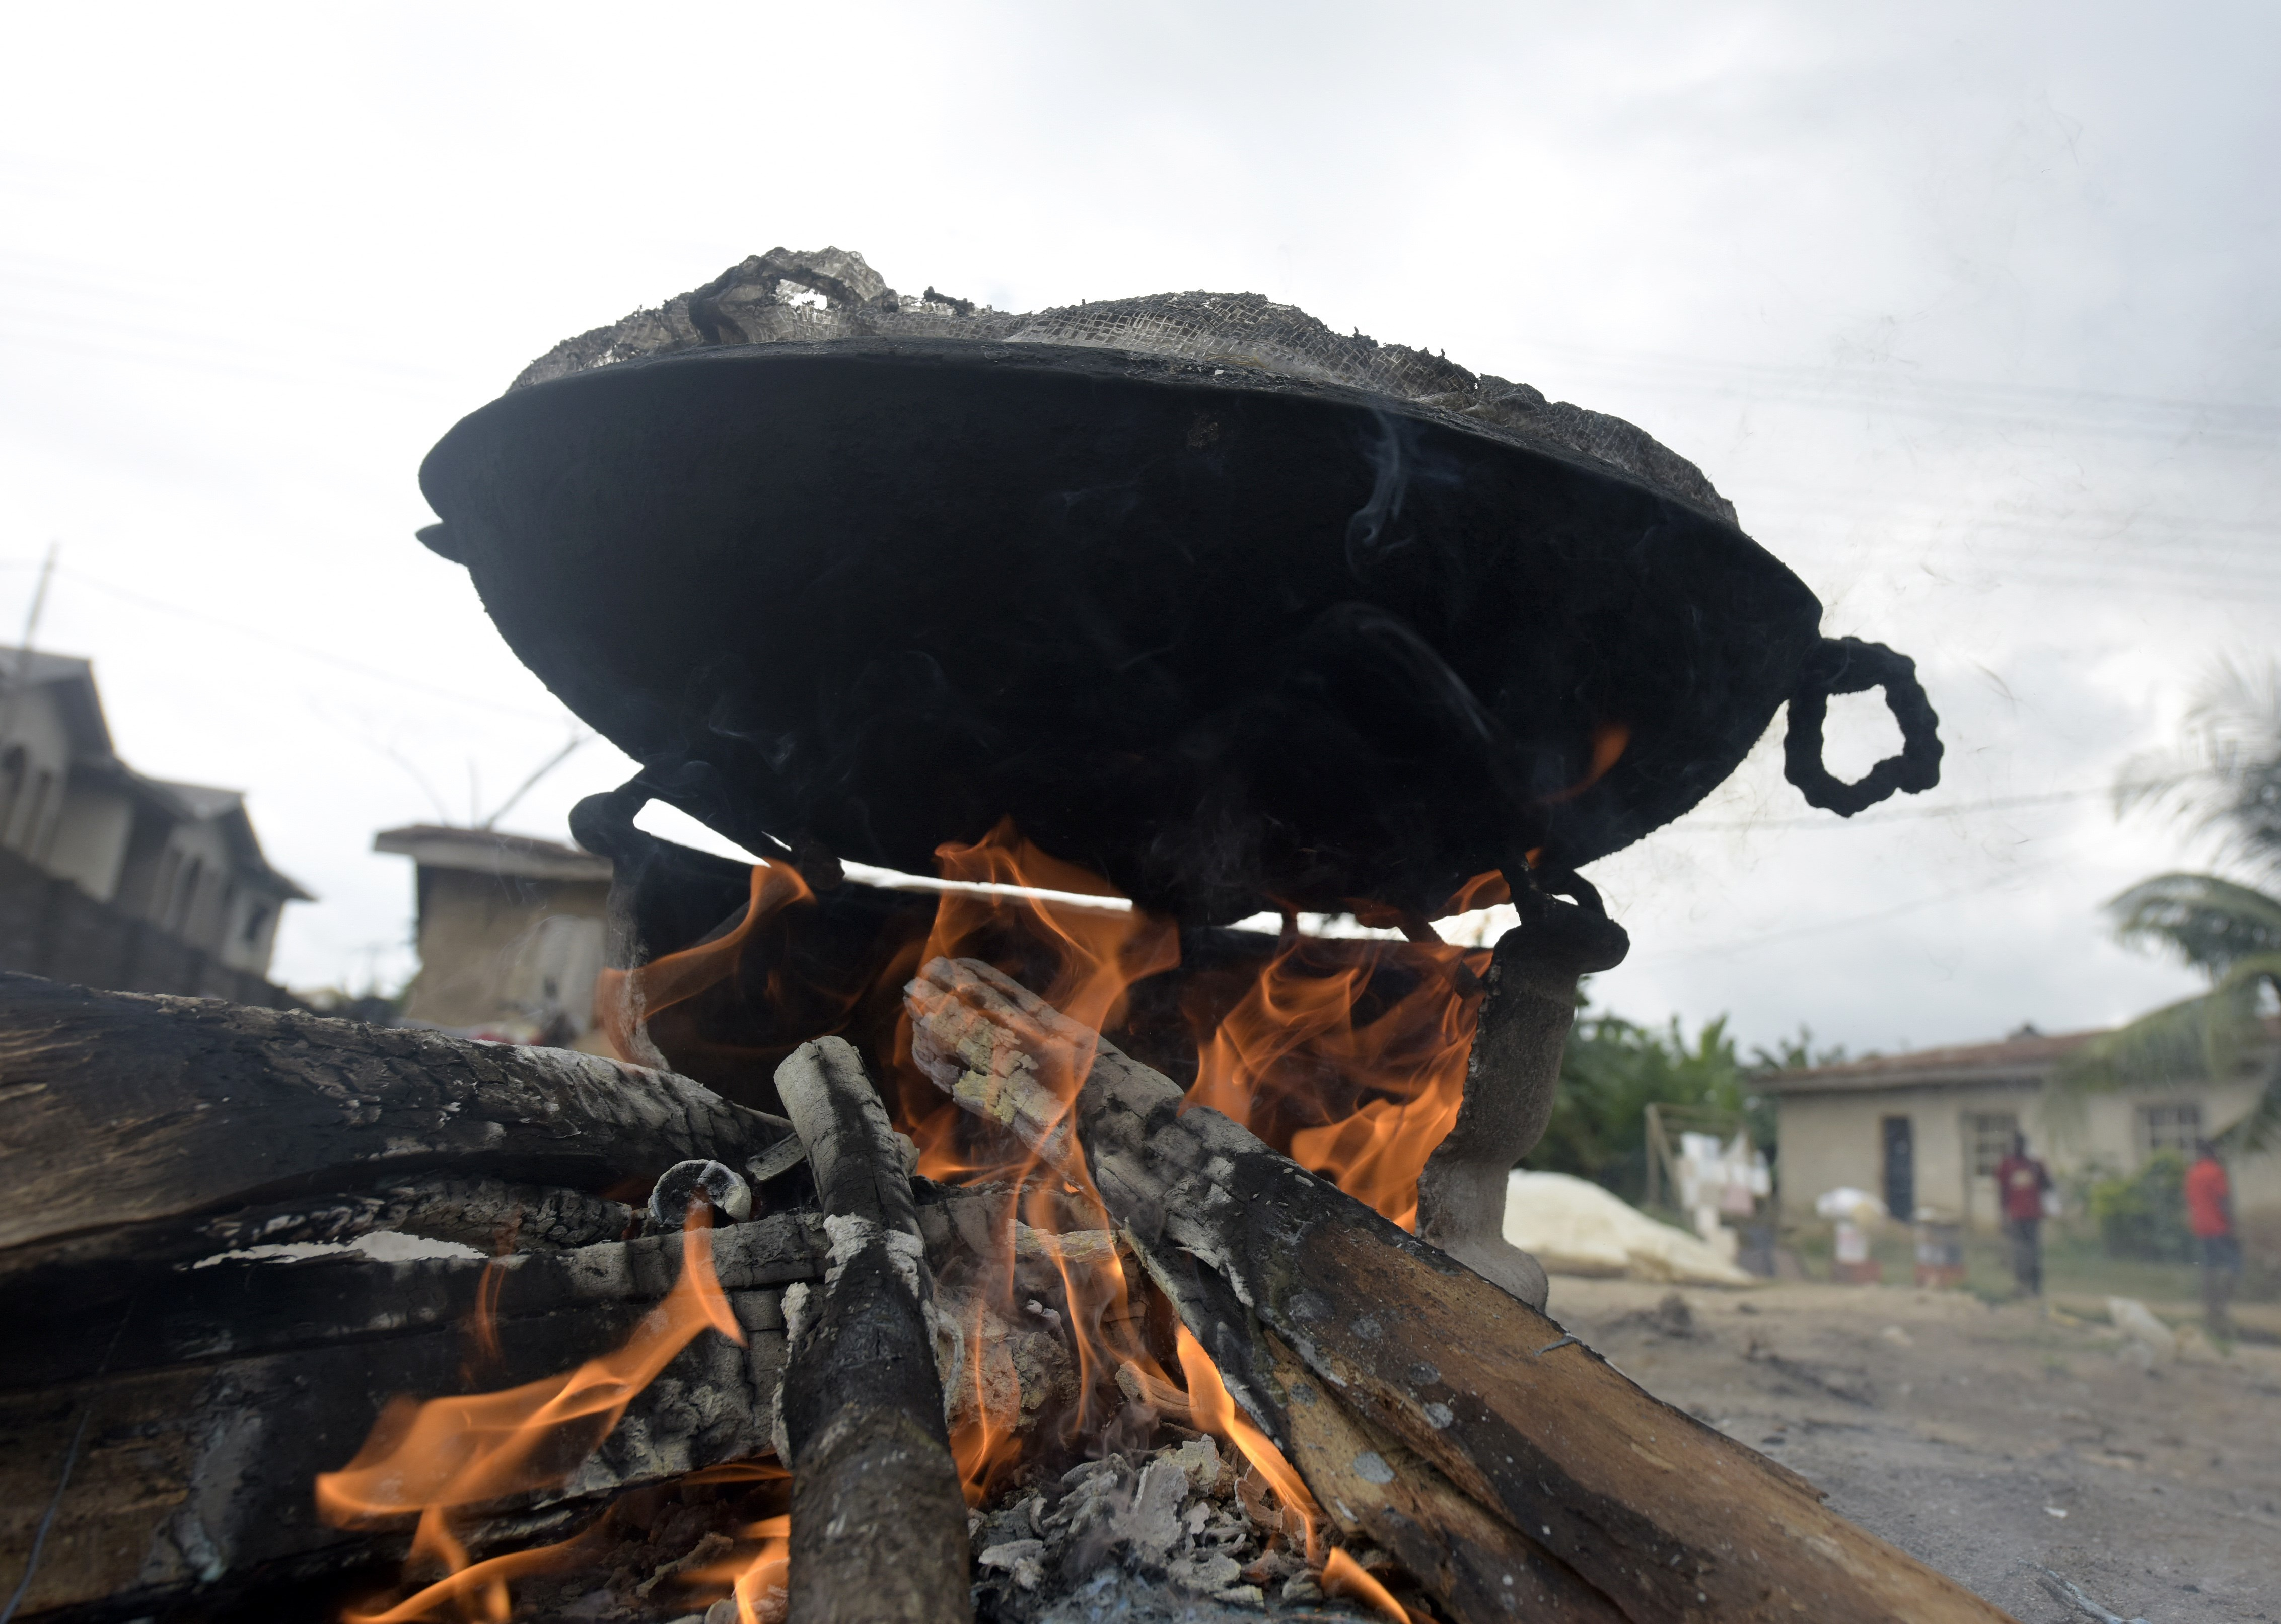 Firewood, seen here on August 22, 2015, is largely used for cooking in sub-Saharan Africa.